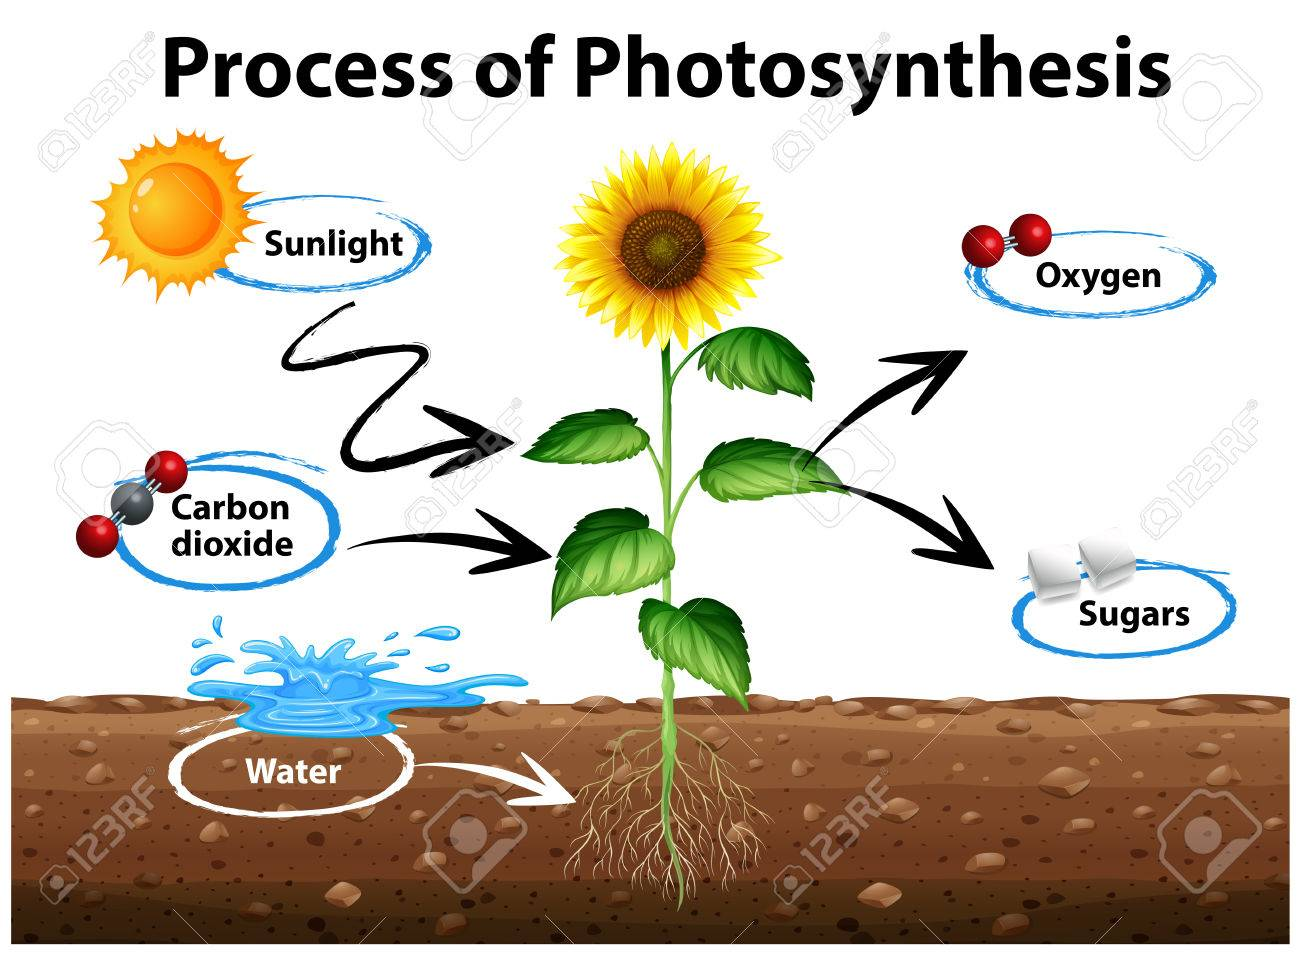 Diagram showing sunflower and process of photosynthesis illustration - 71260378